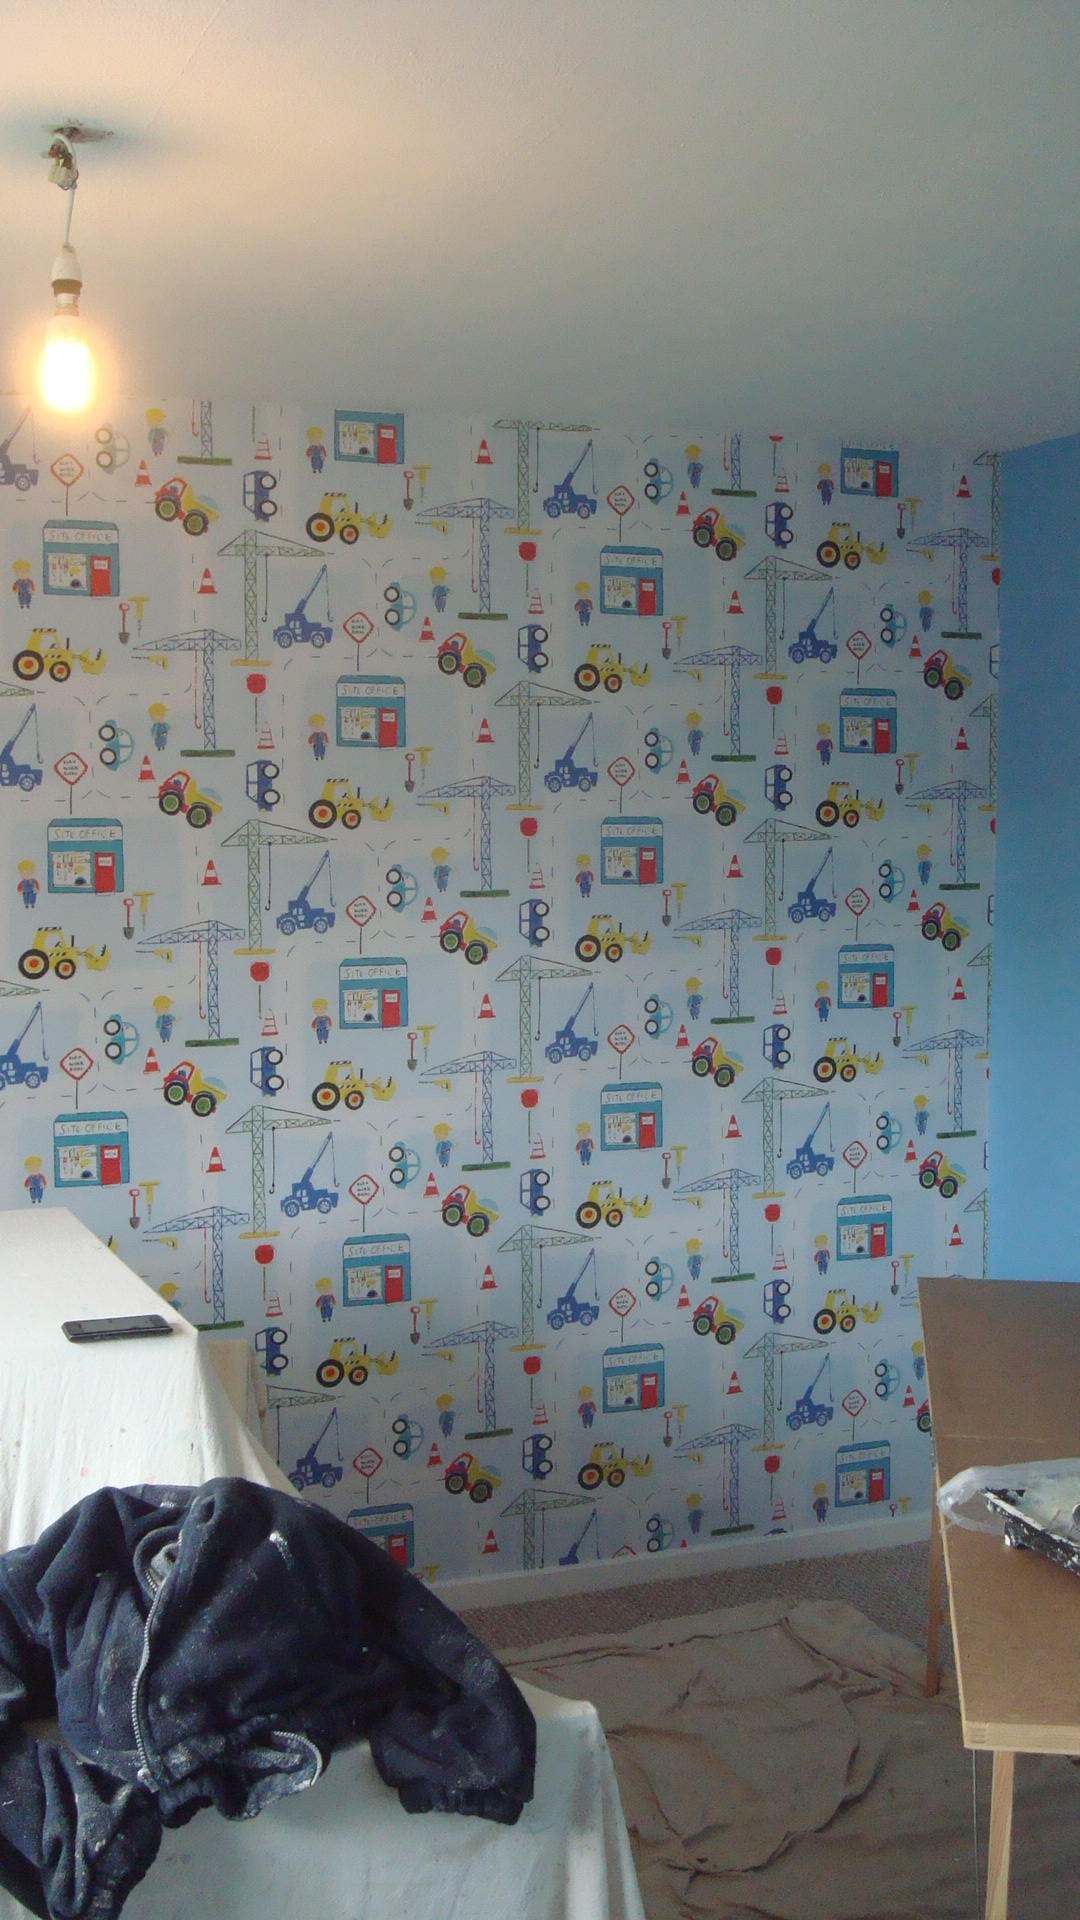 Bob the Builder Wallpaper in a children's nursery.